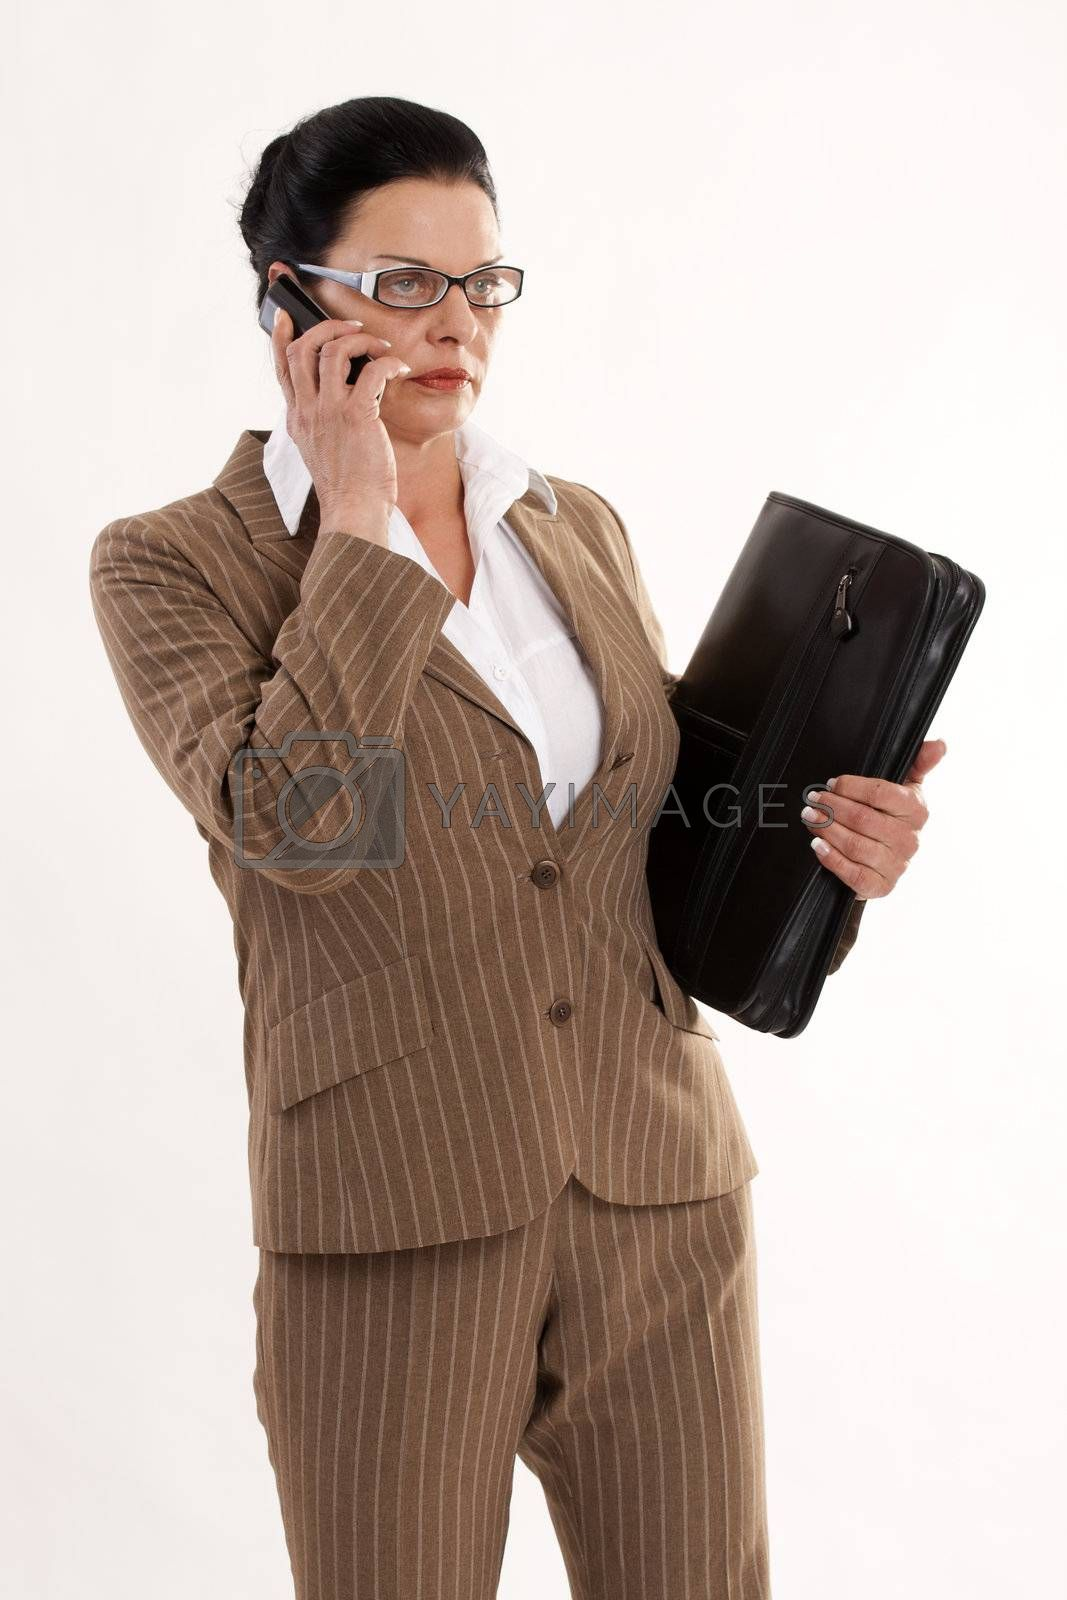 modern business woman on the phone with timer in hand